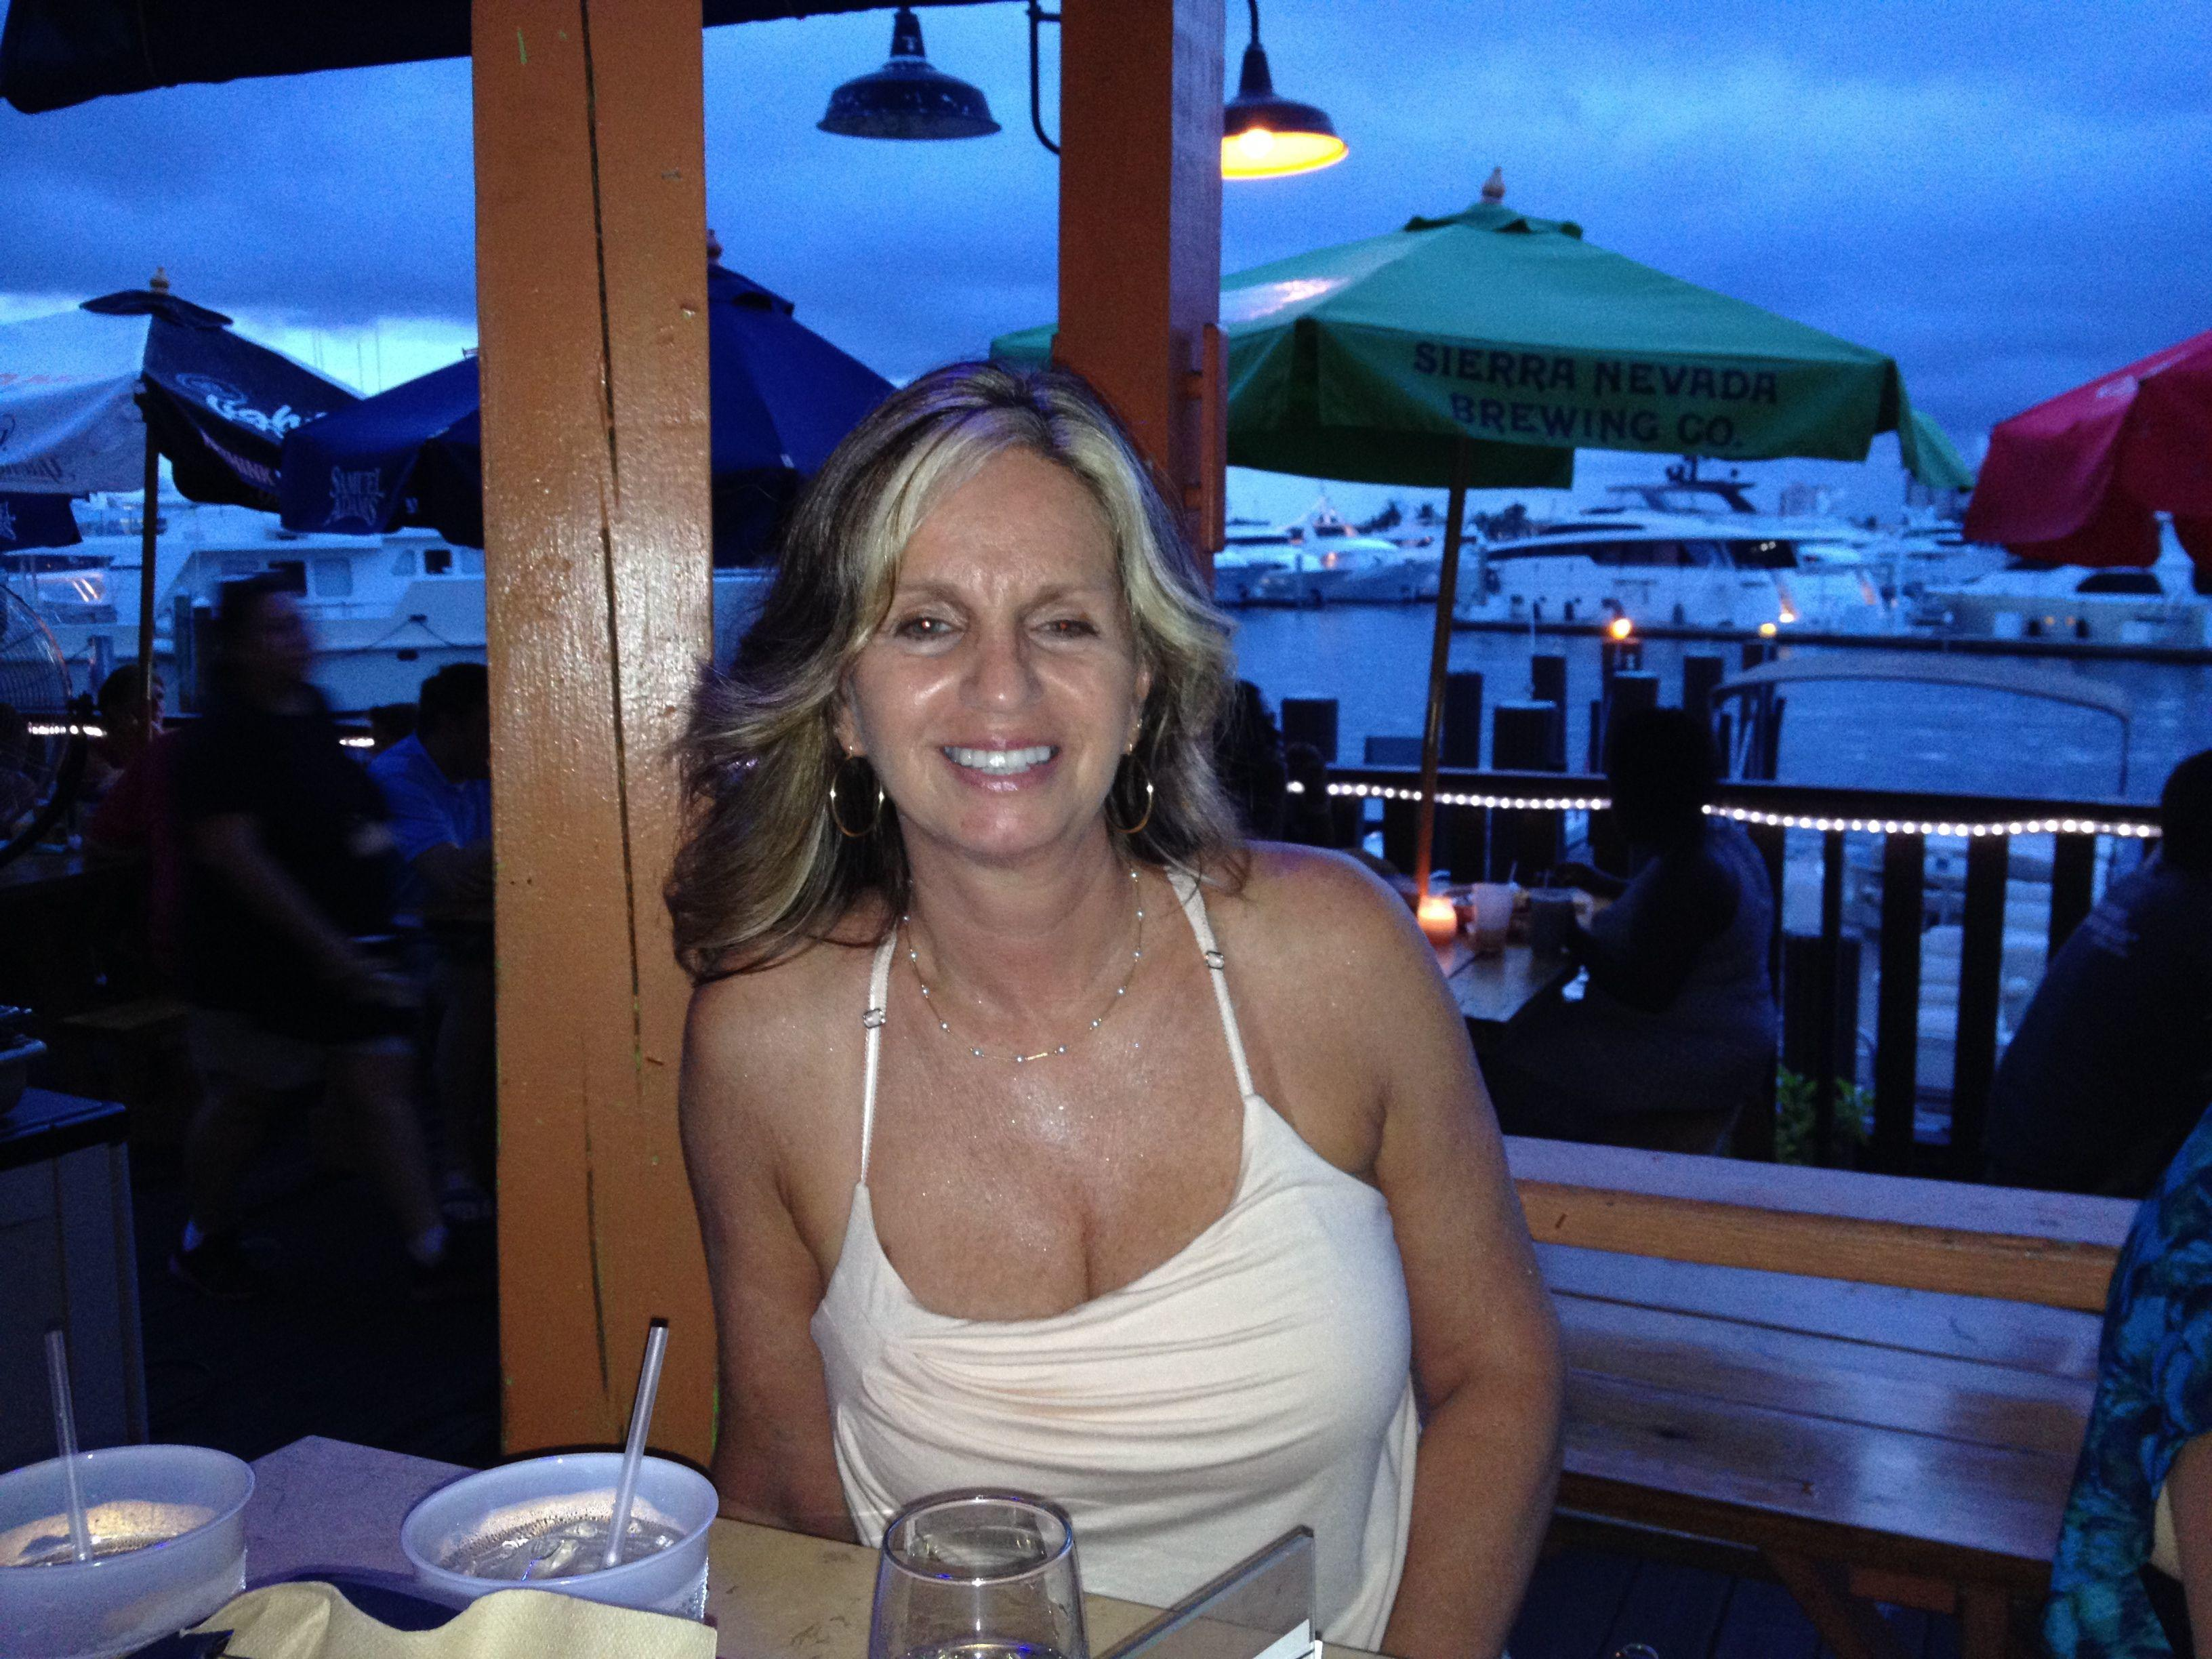 fort lyon mature singles Matchcom, the leading online dating resource for singles search through thousands of personals and photos go ahead, it's free to look.